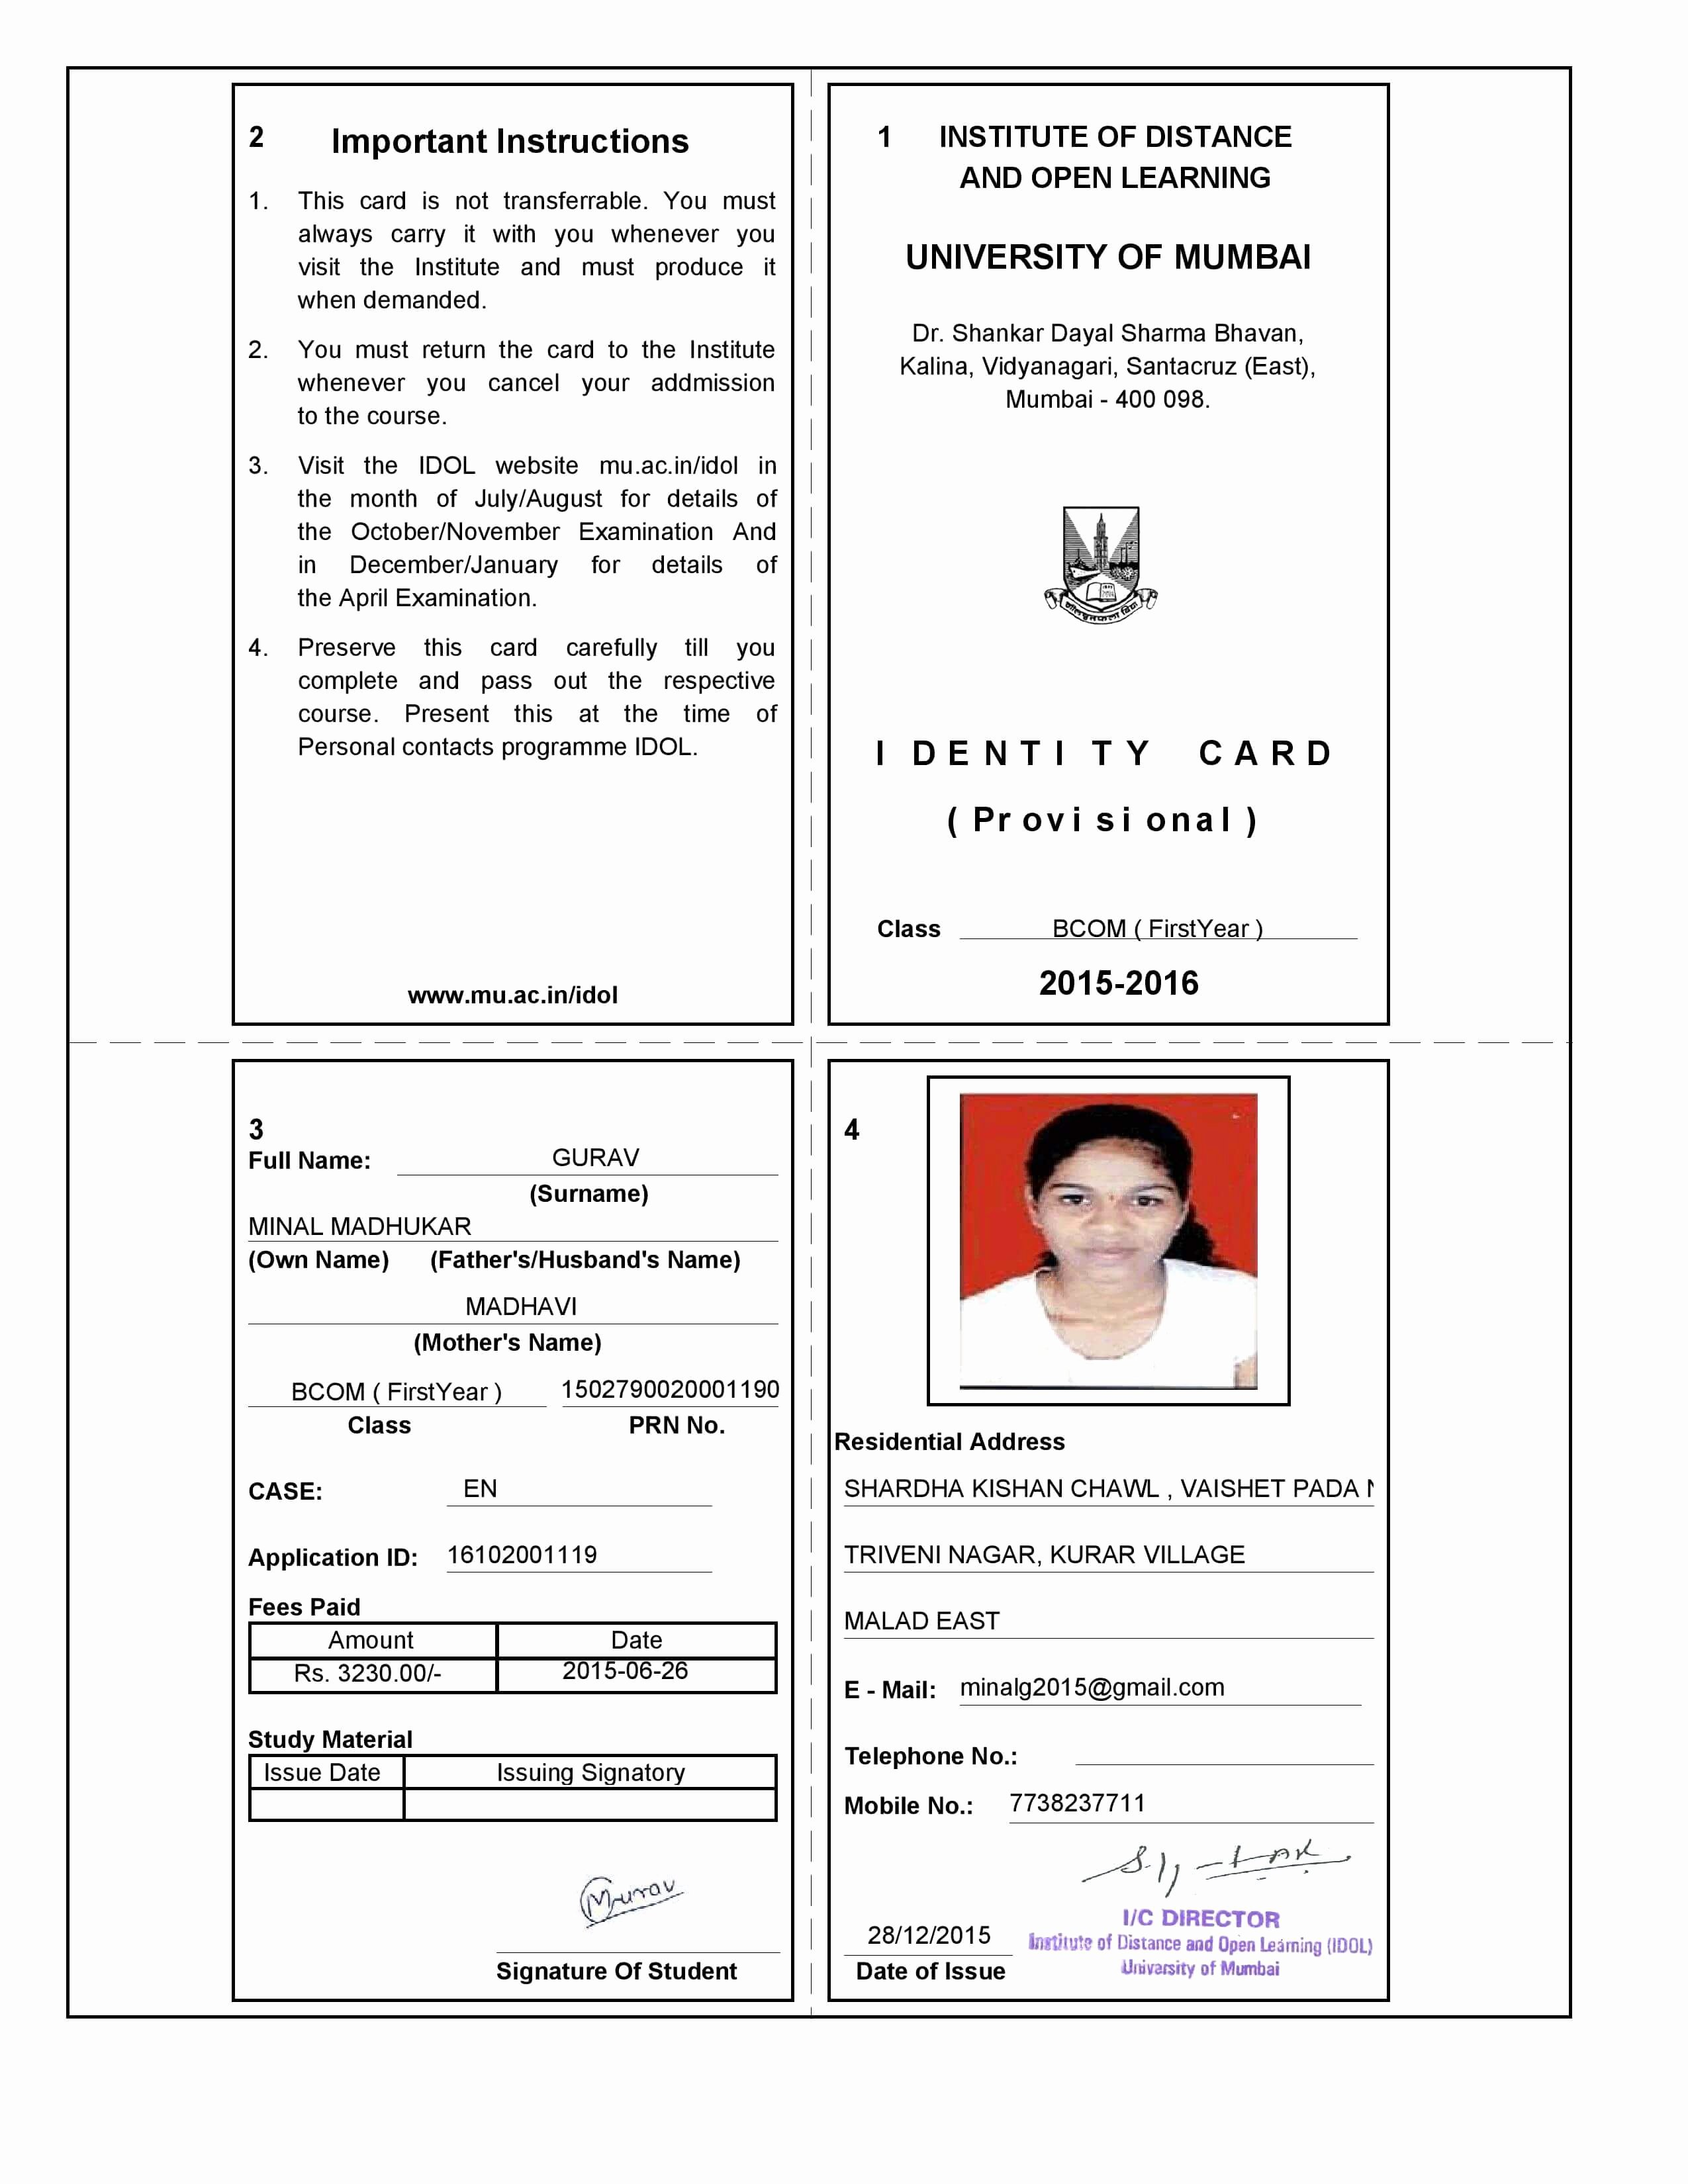 Sample Identity Card Best Of Dangerous Security Flaw In Idol S Website